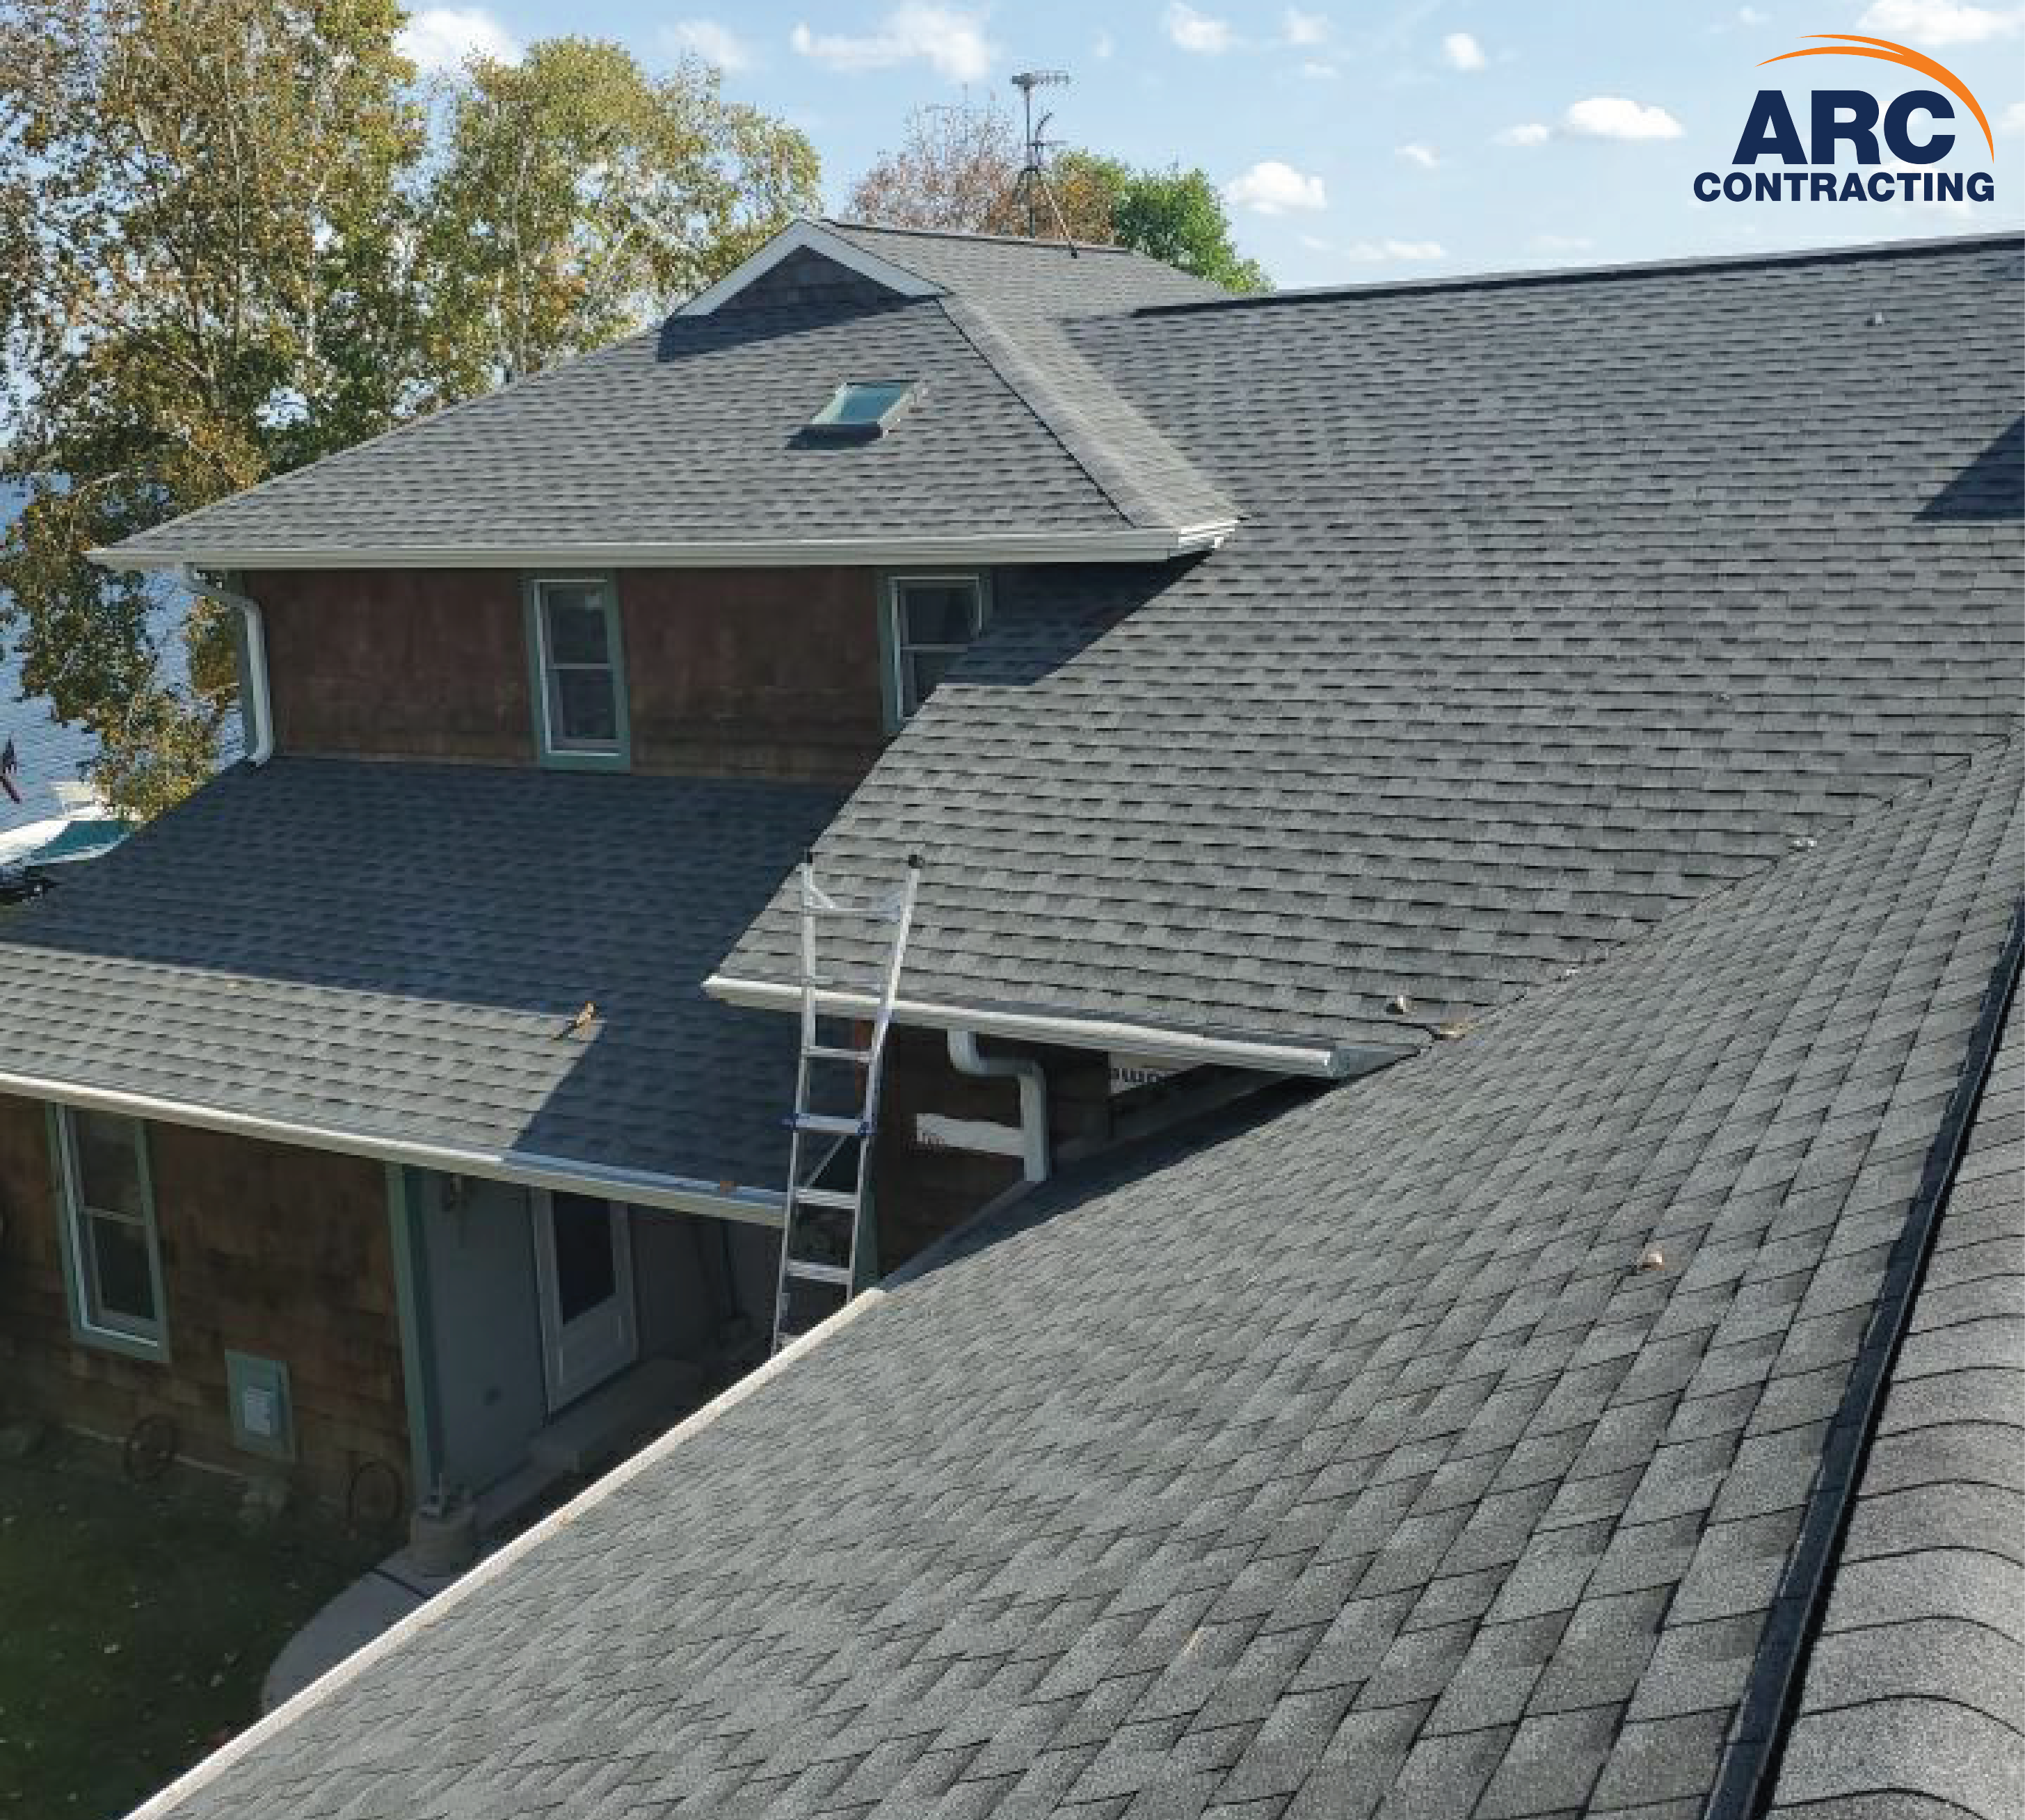 Schedule For A Free Quote In 2020 Free Quotes Roofing Contractors Roofing